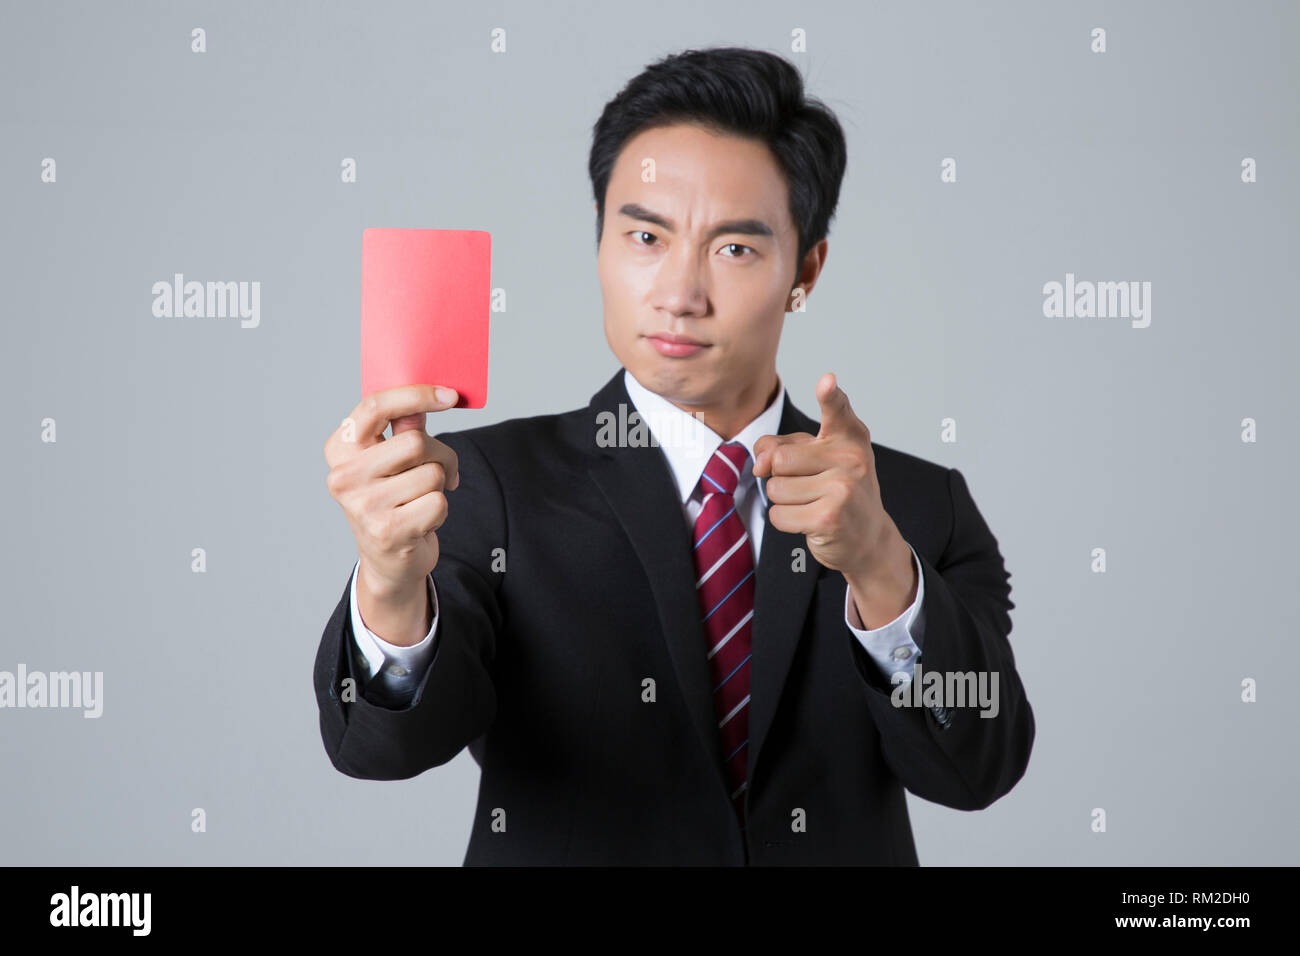 Young businessman concept photo. 028 - Stock Image